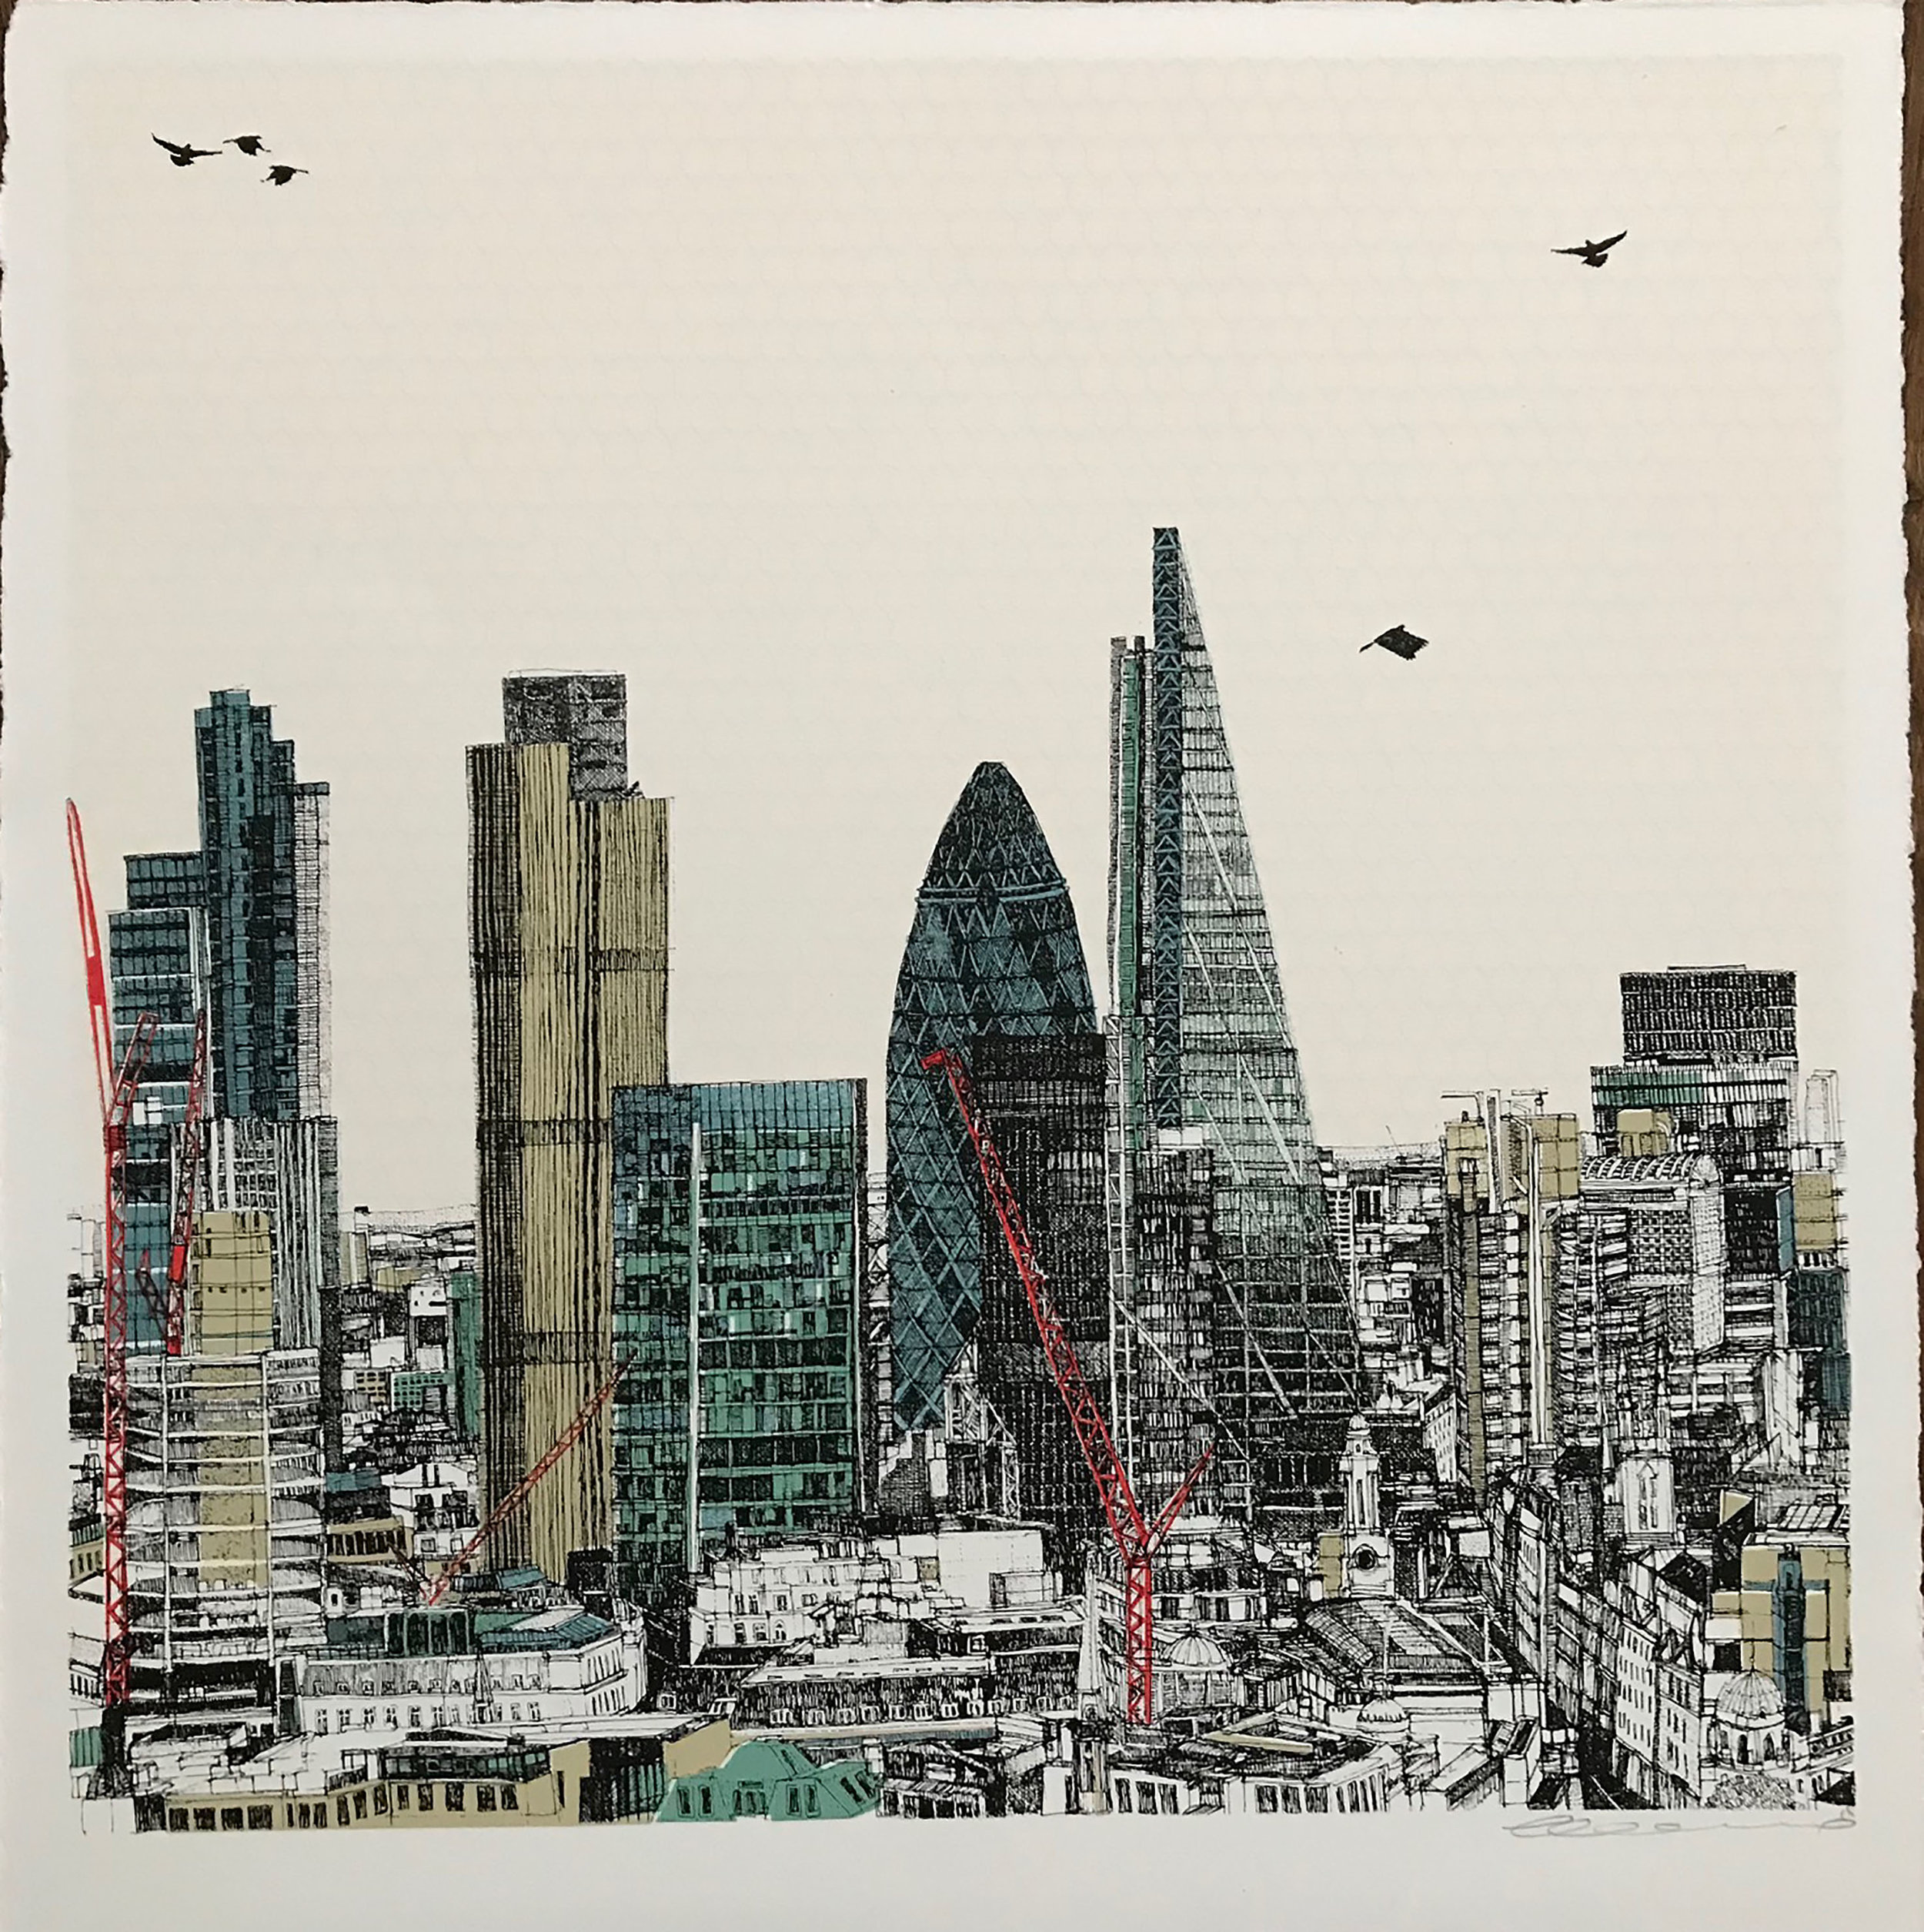 Sunrise Sunset London, 6 colour screen print, image size 35x35cm, paper size 37x38cm, edition of 75, unframed retail price £250 .jpg